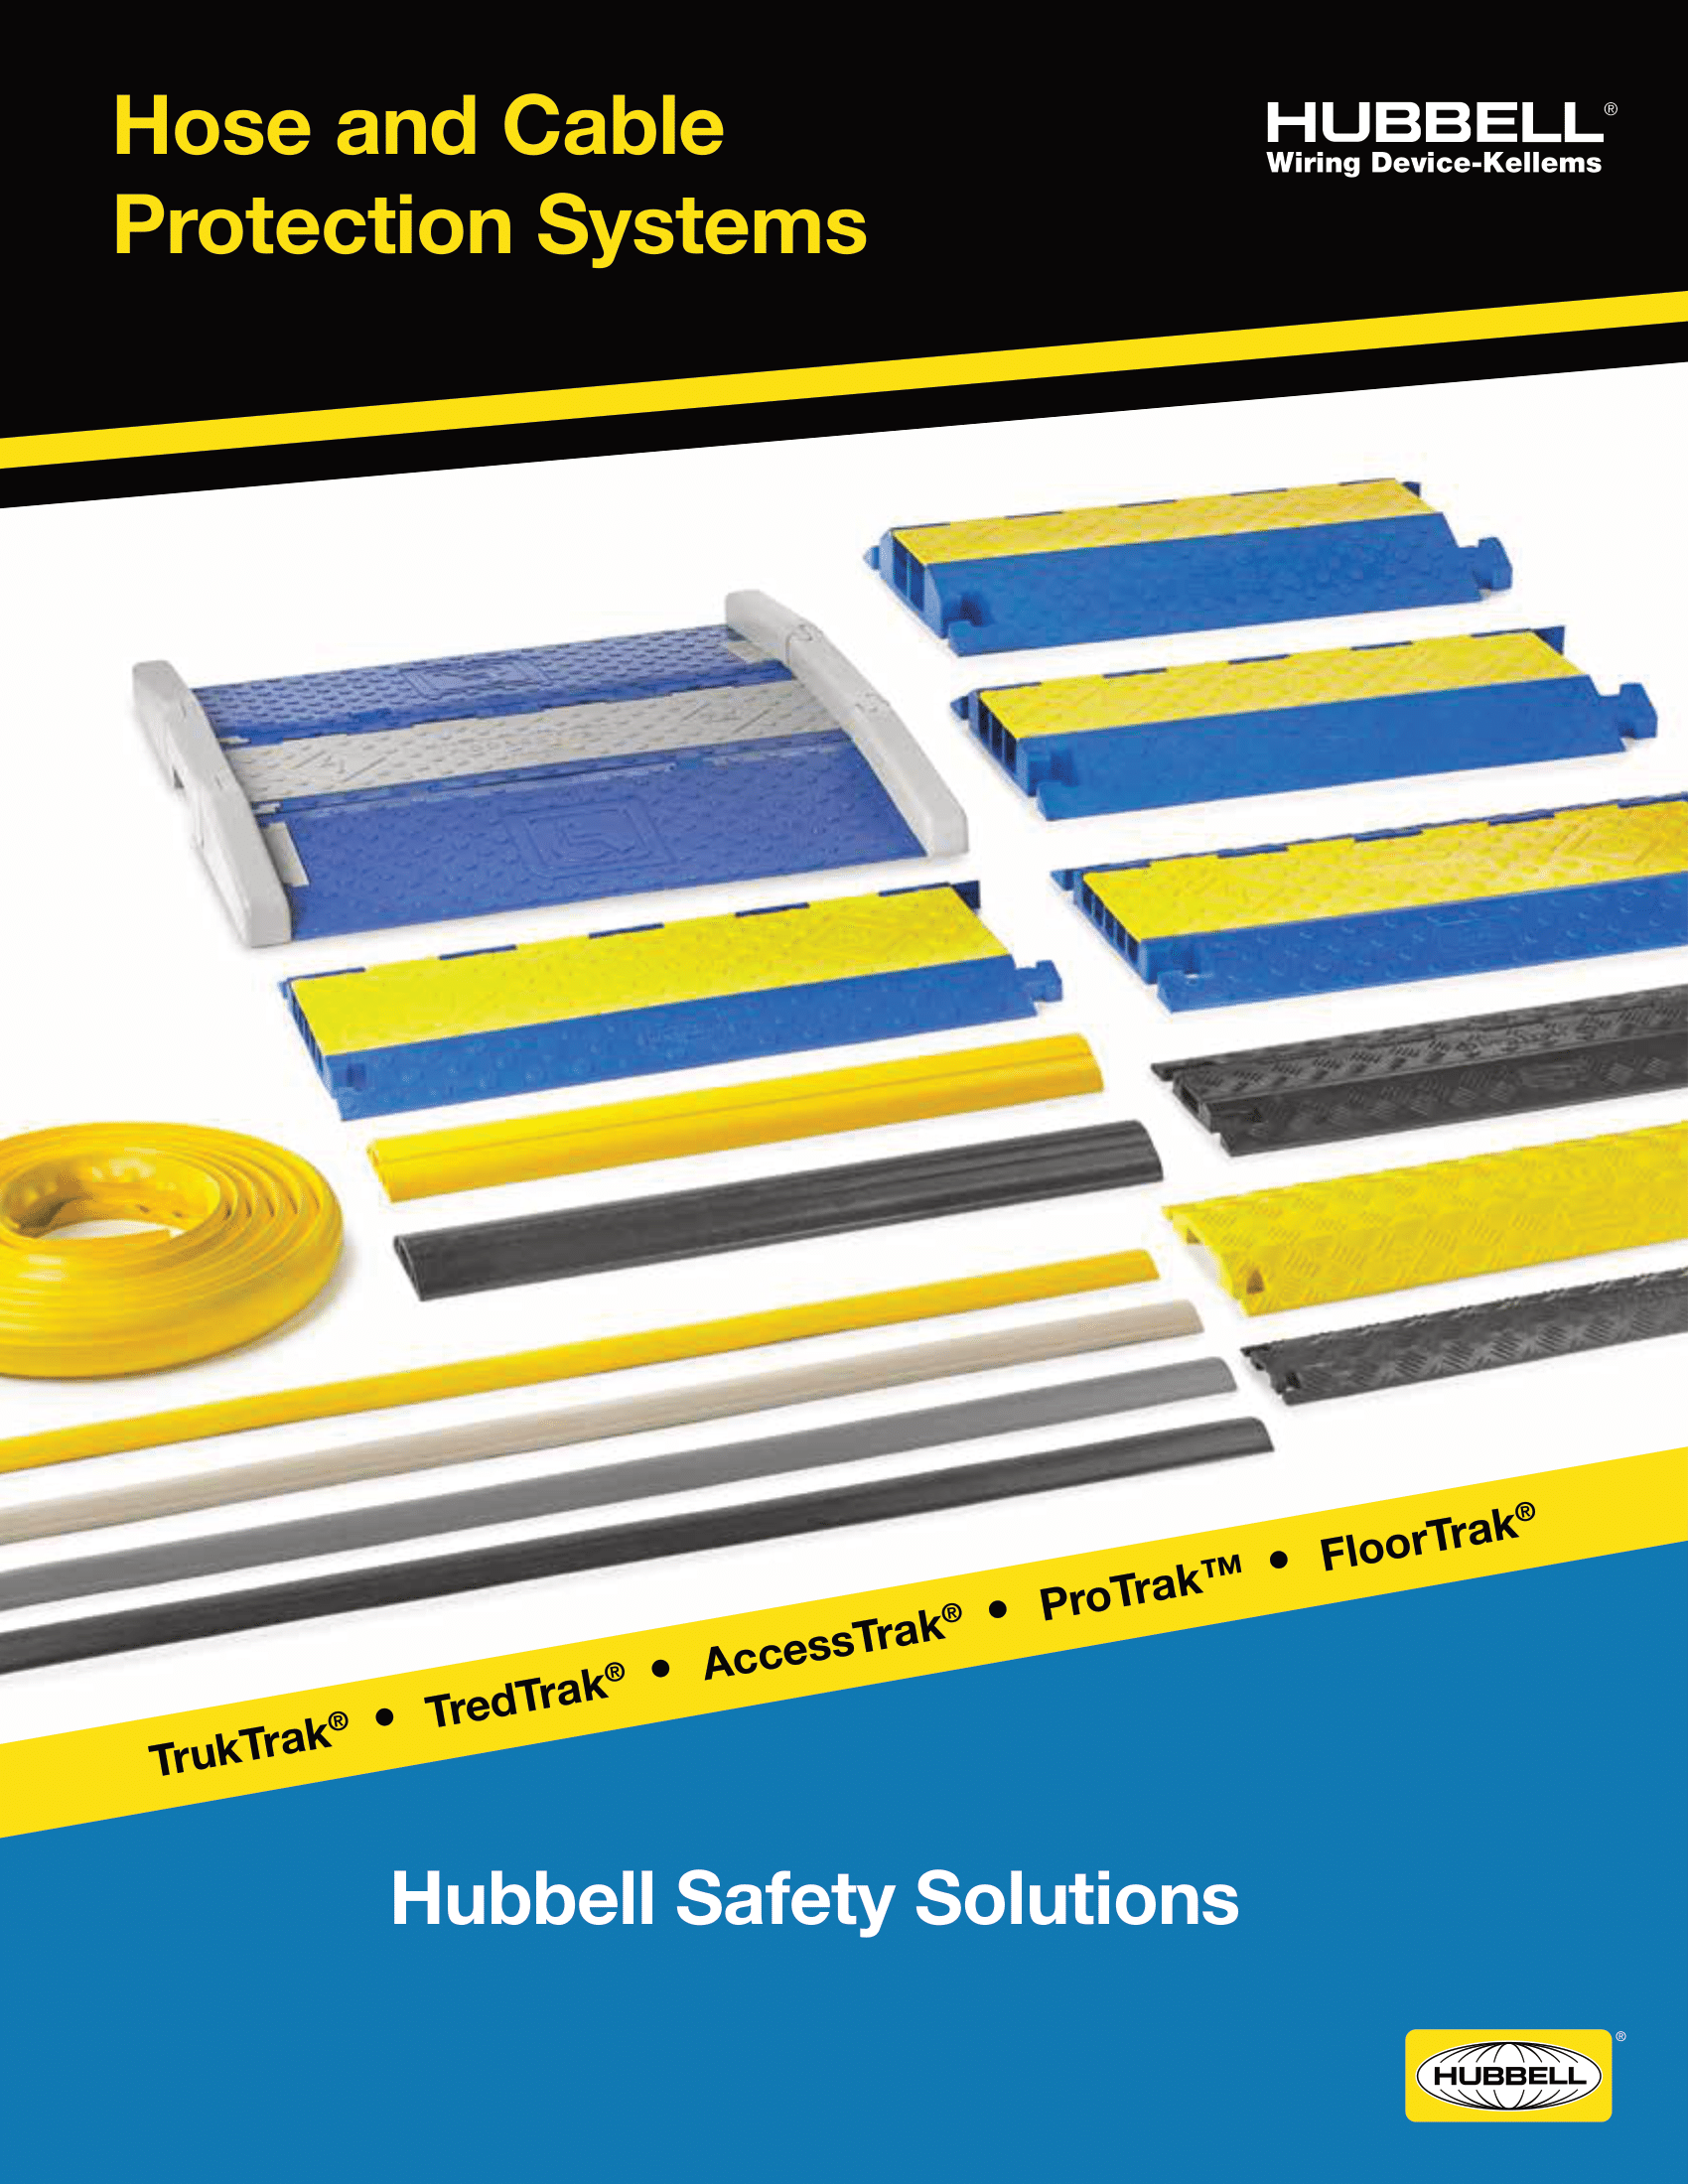 Hose and Cable Protection Systems